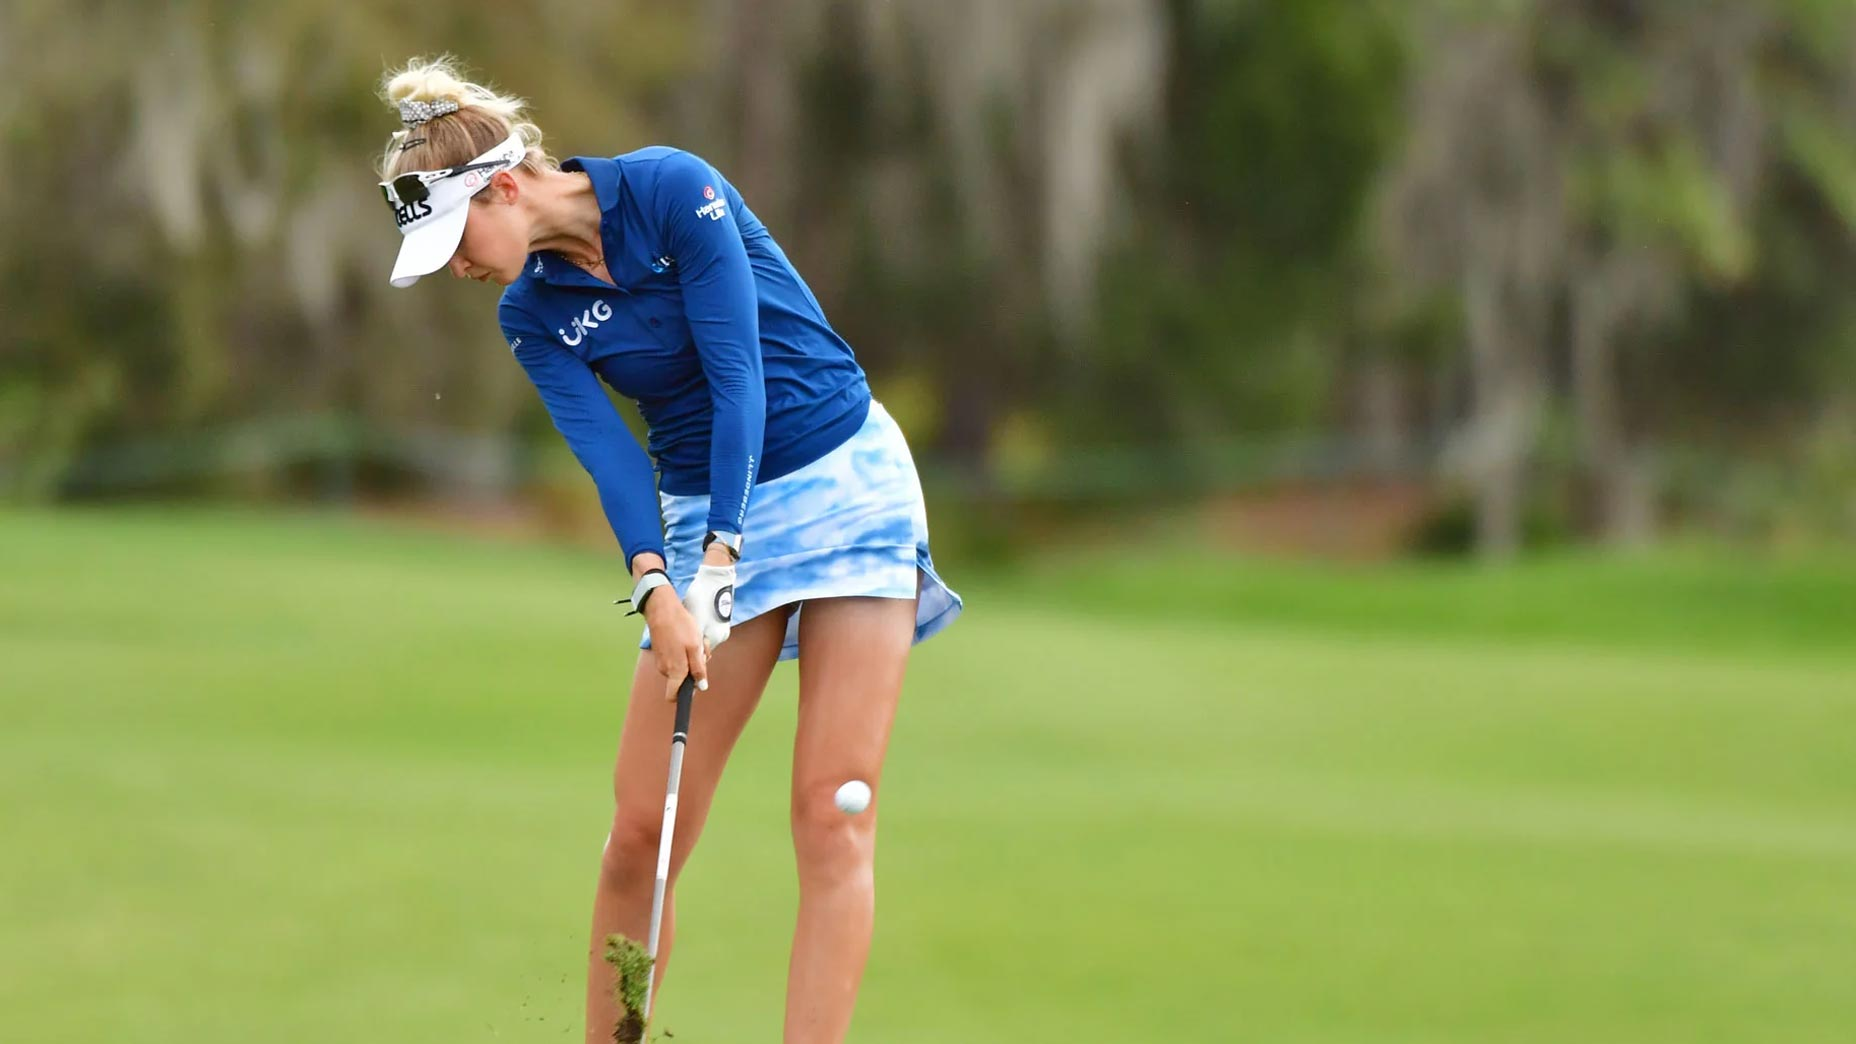 Nelly Korda's stylish Saturday skirt: Spotted on the LPGA Tour